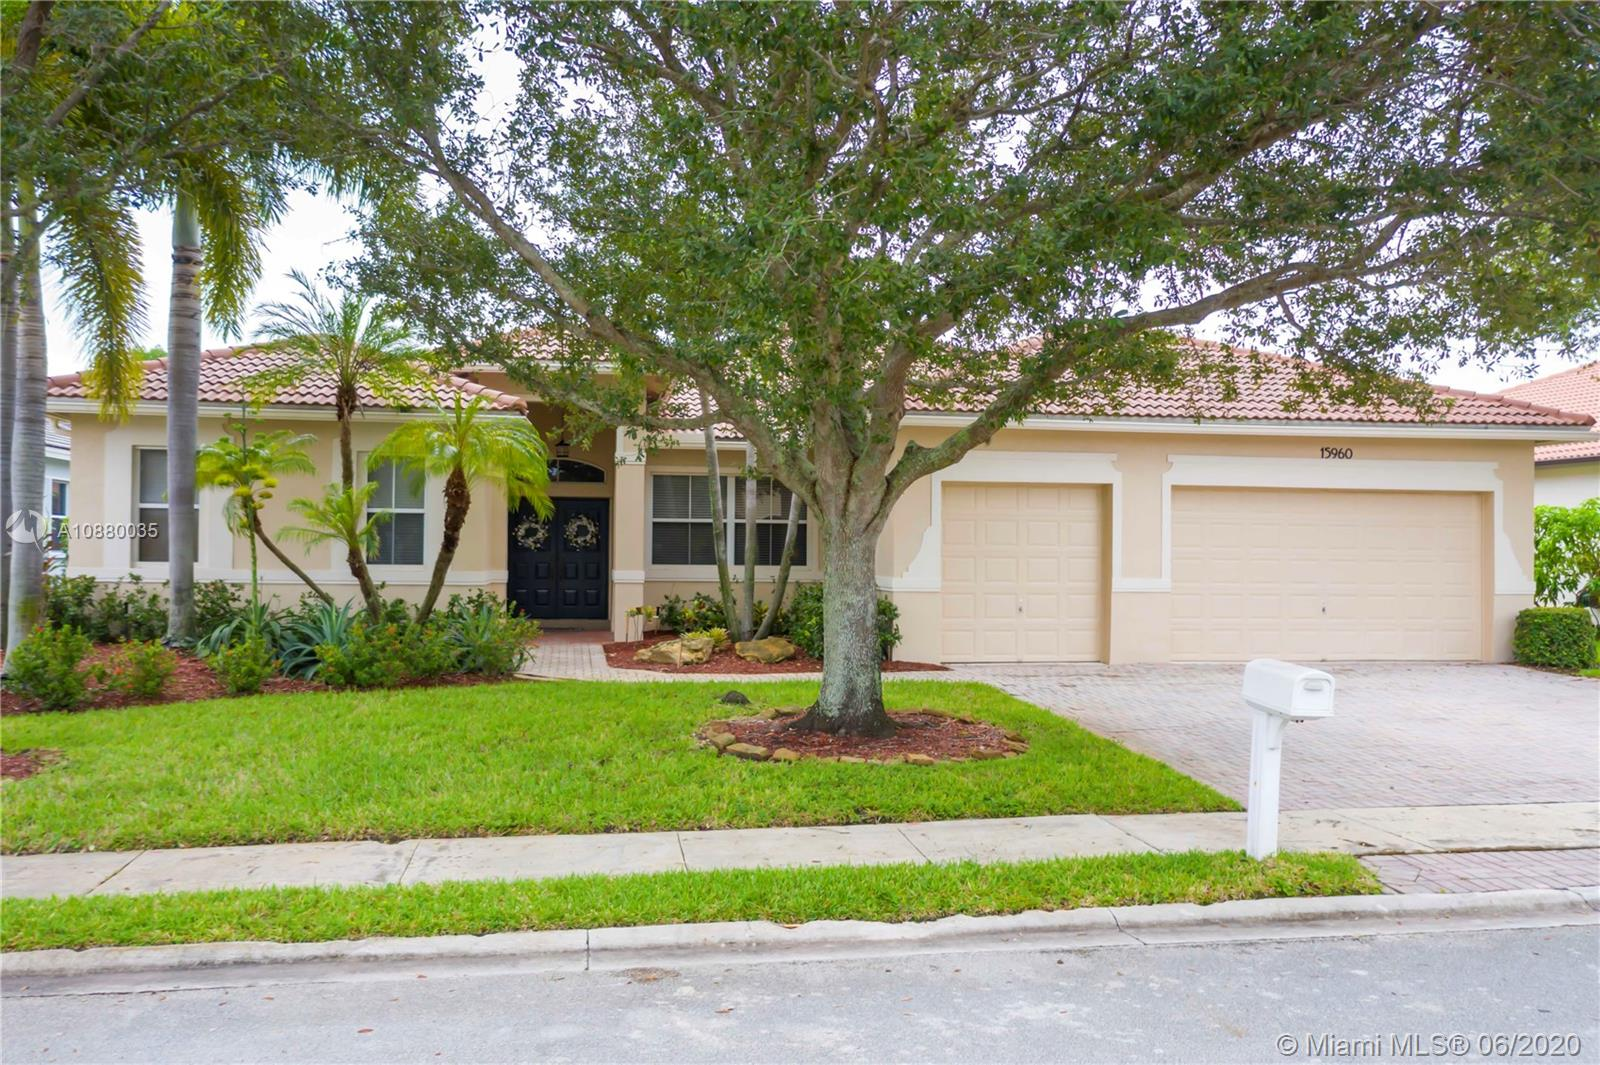 Impeccable one story home in the sought after community of Estates of Pembroke Shores. This 3 bedroom, 2 bath and a Den, which can be converted into the builder's 4th bedroom, is move in ready and well maintained. A/C is 2012 & water heater 2016. The desirable design features a split floor plan, master bedroom wing with double walk in closets and spacious master bath with soaking tub and separate shower, plus double vanities. The large kitchen with walk in pantry opens to an oversized family great room and dining. Outside the pool is surrounded by lush greenery along with a raised flower bed perfect for gardening. The extended pavers allow for plenty of entertaining area as well as a private screened porch perfect for a quiet evening. 24 hr manned guard gate.